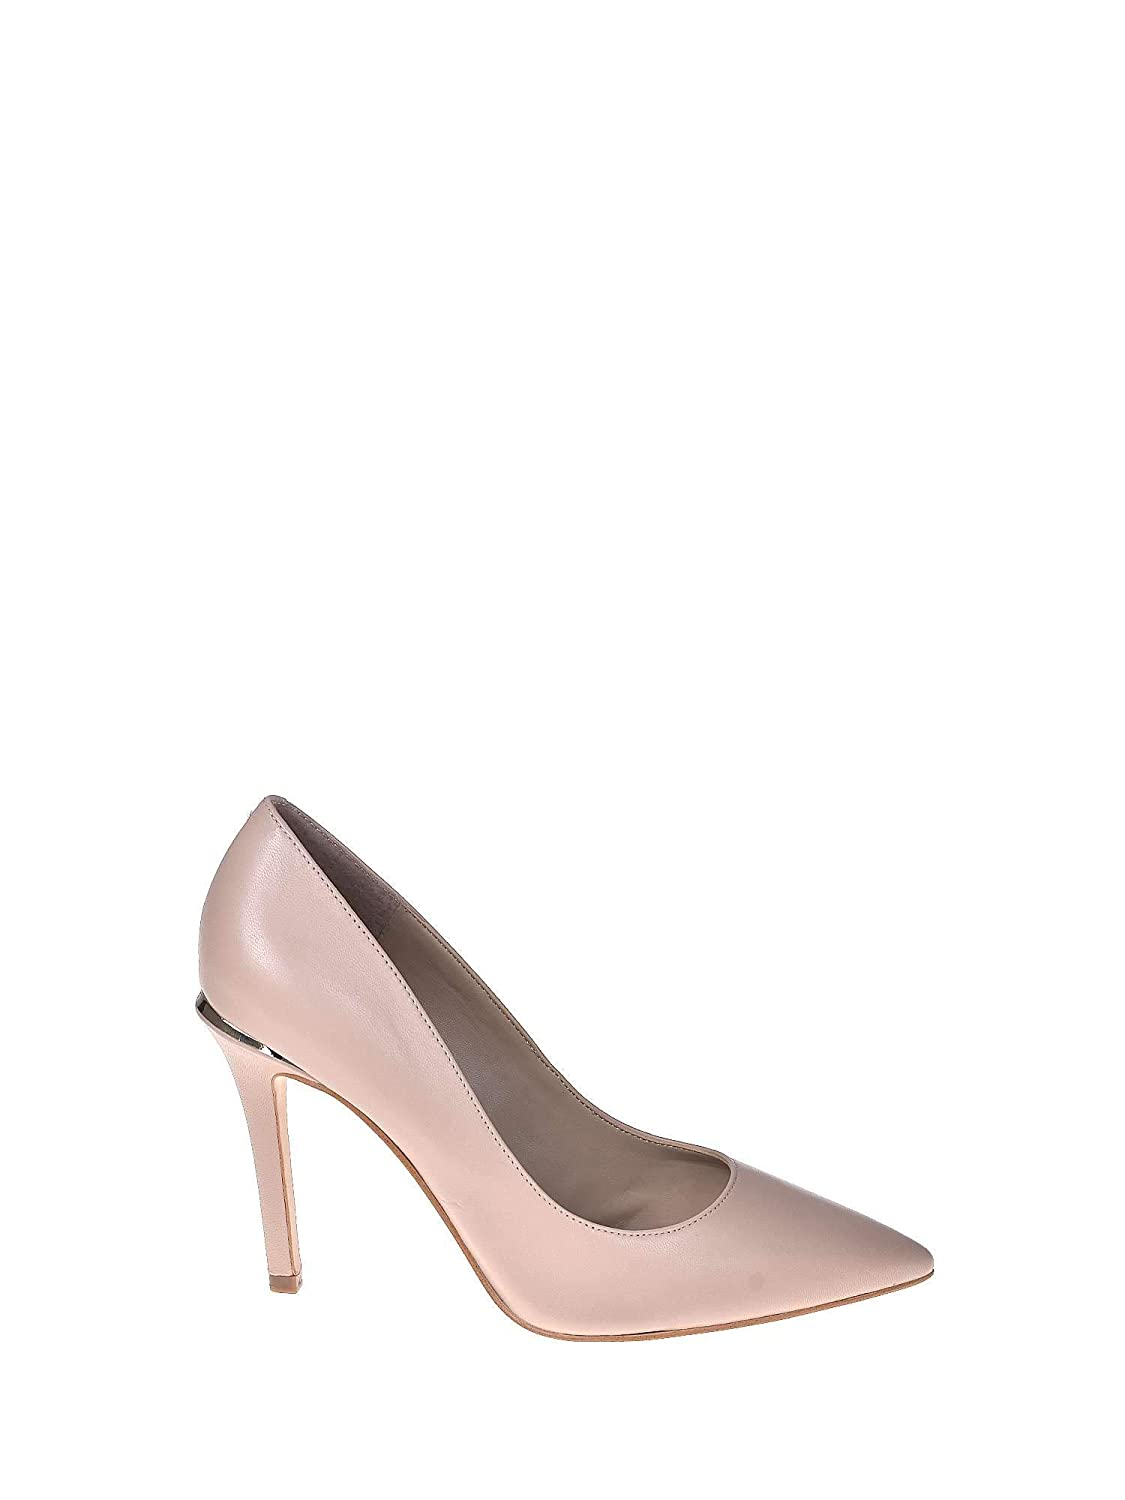 Guess Damen Bellamy Decollete (Pump) Leath Pumps  | Schön geformt